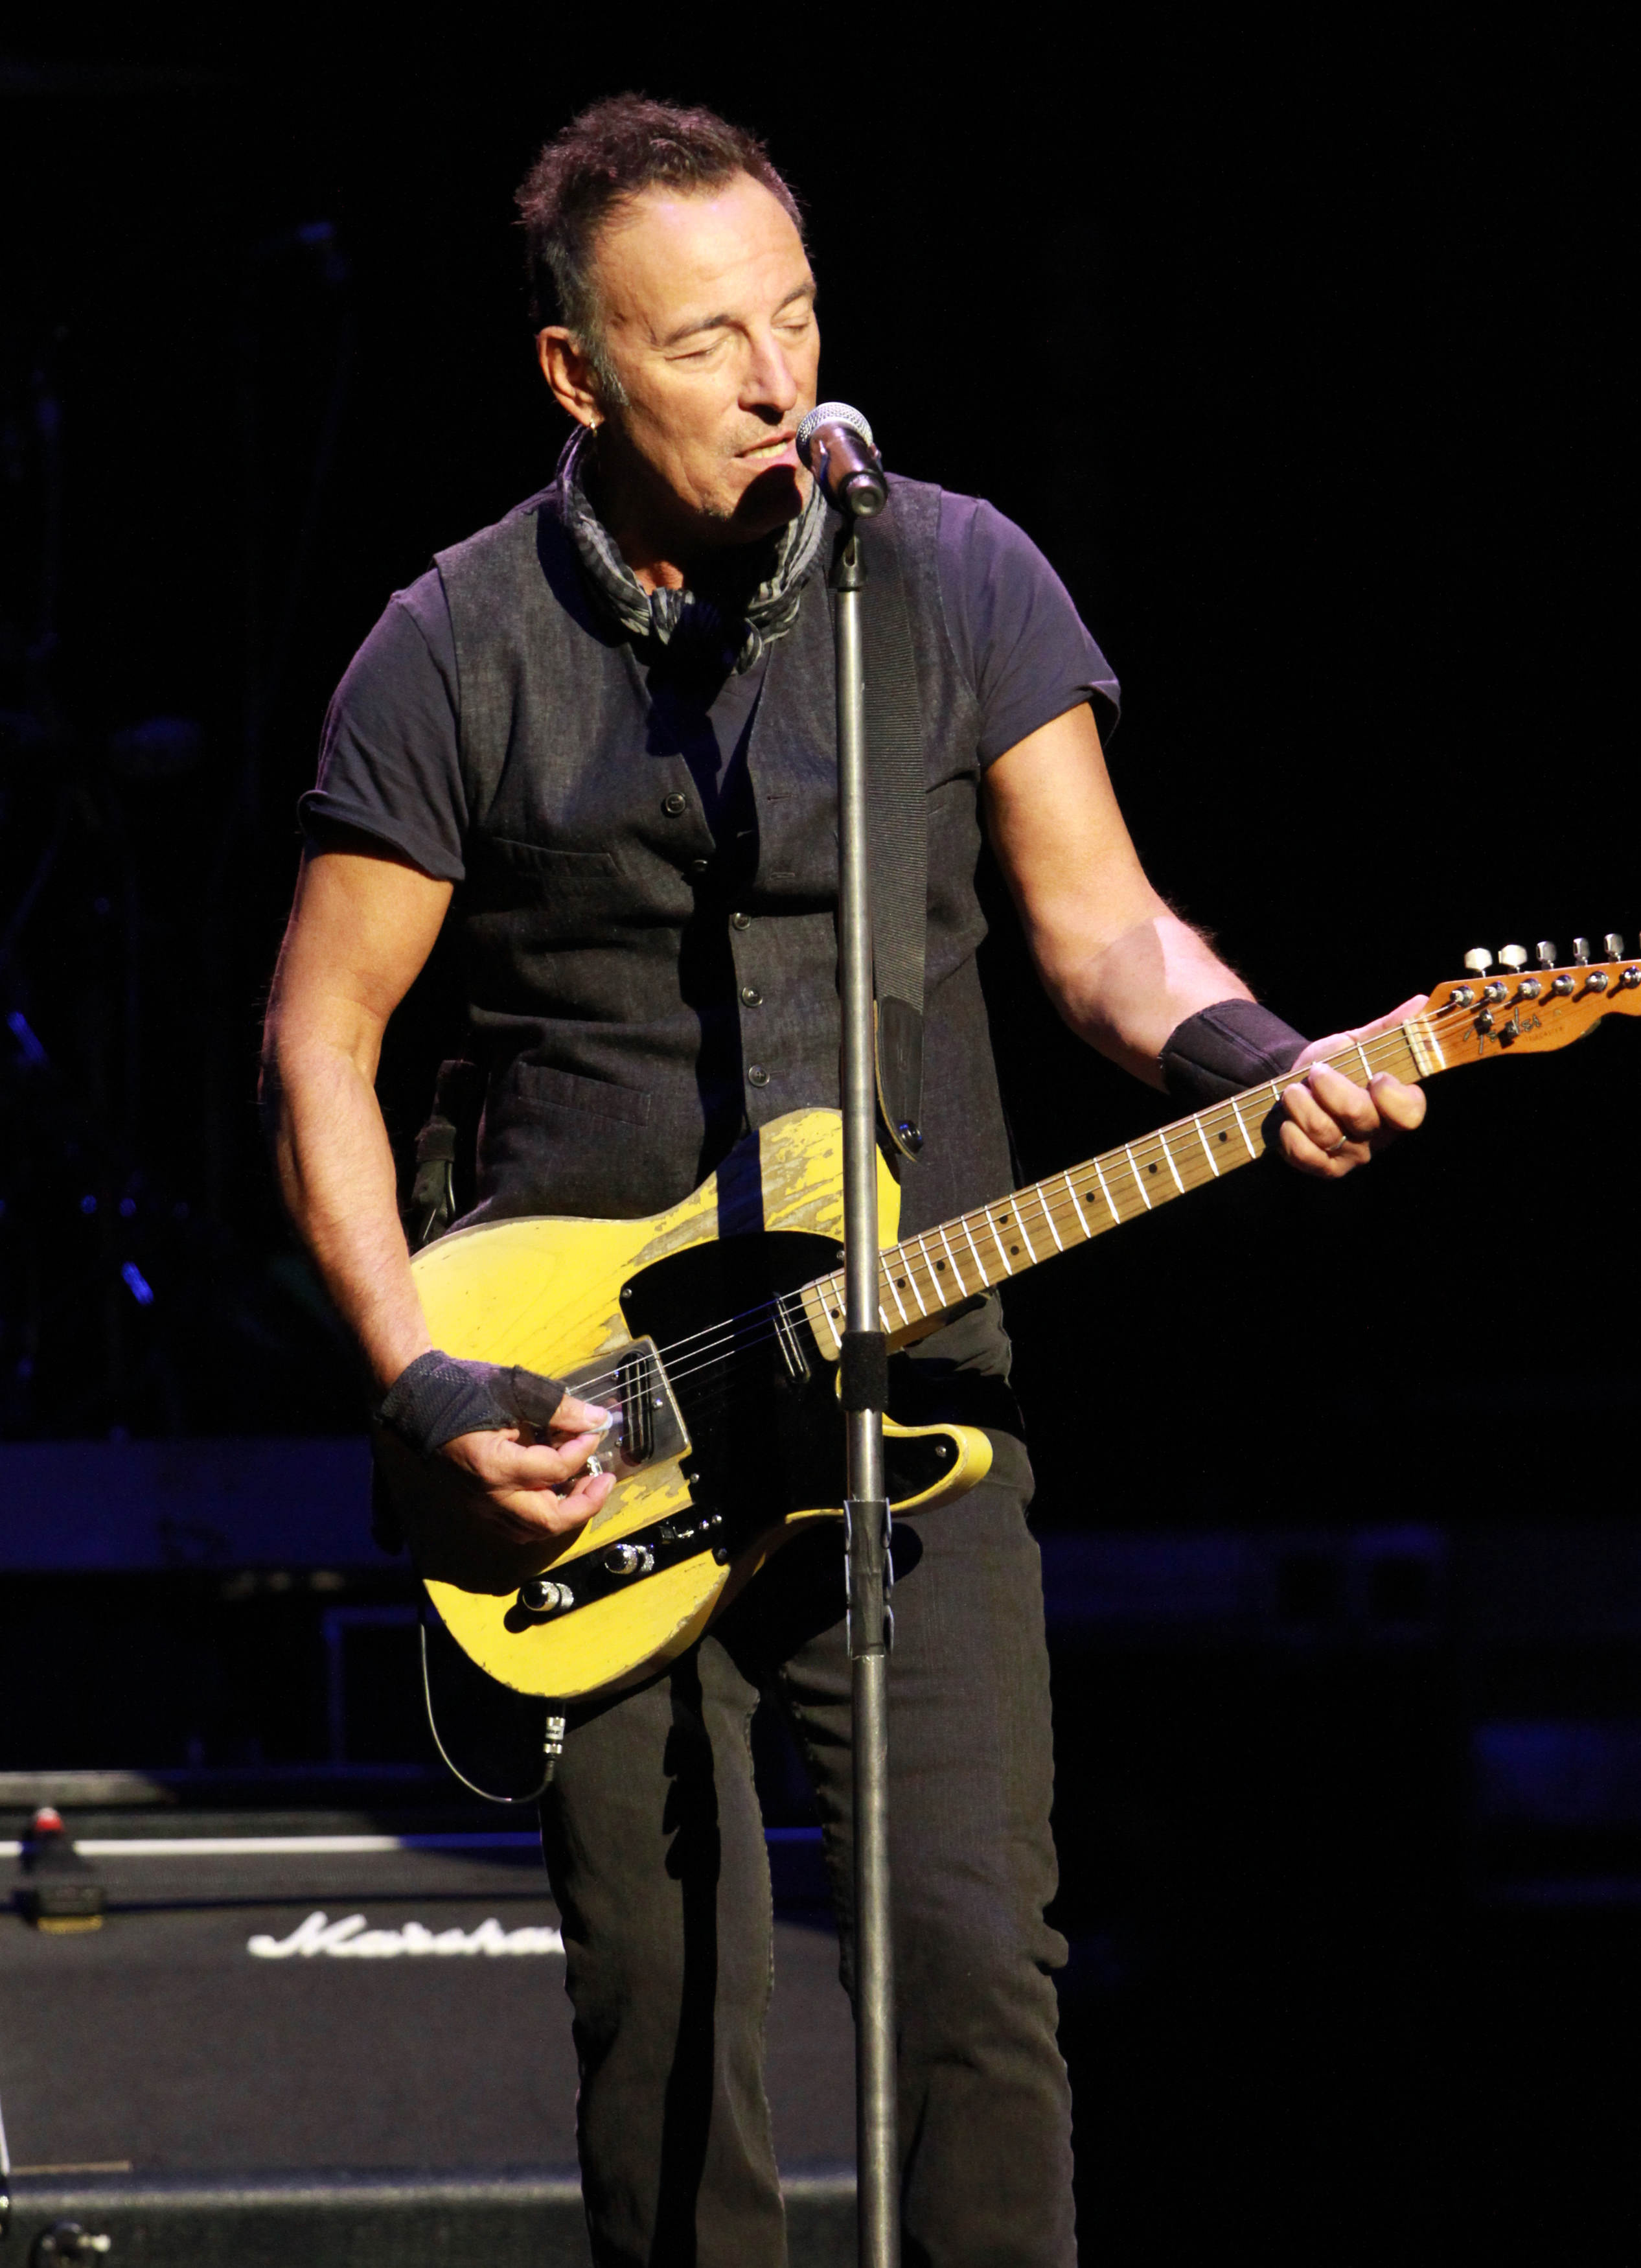 Bruce Springsteen reveals tense relationship with his father